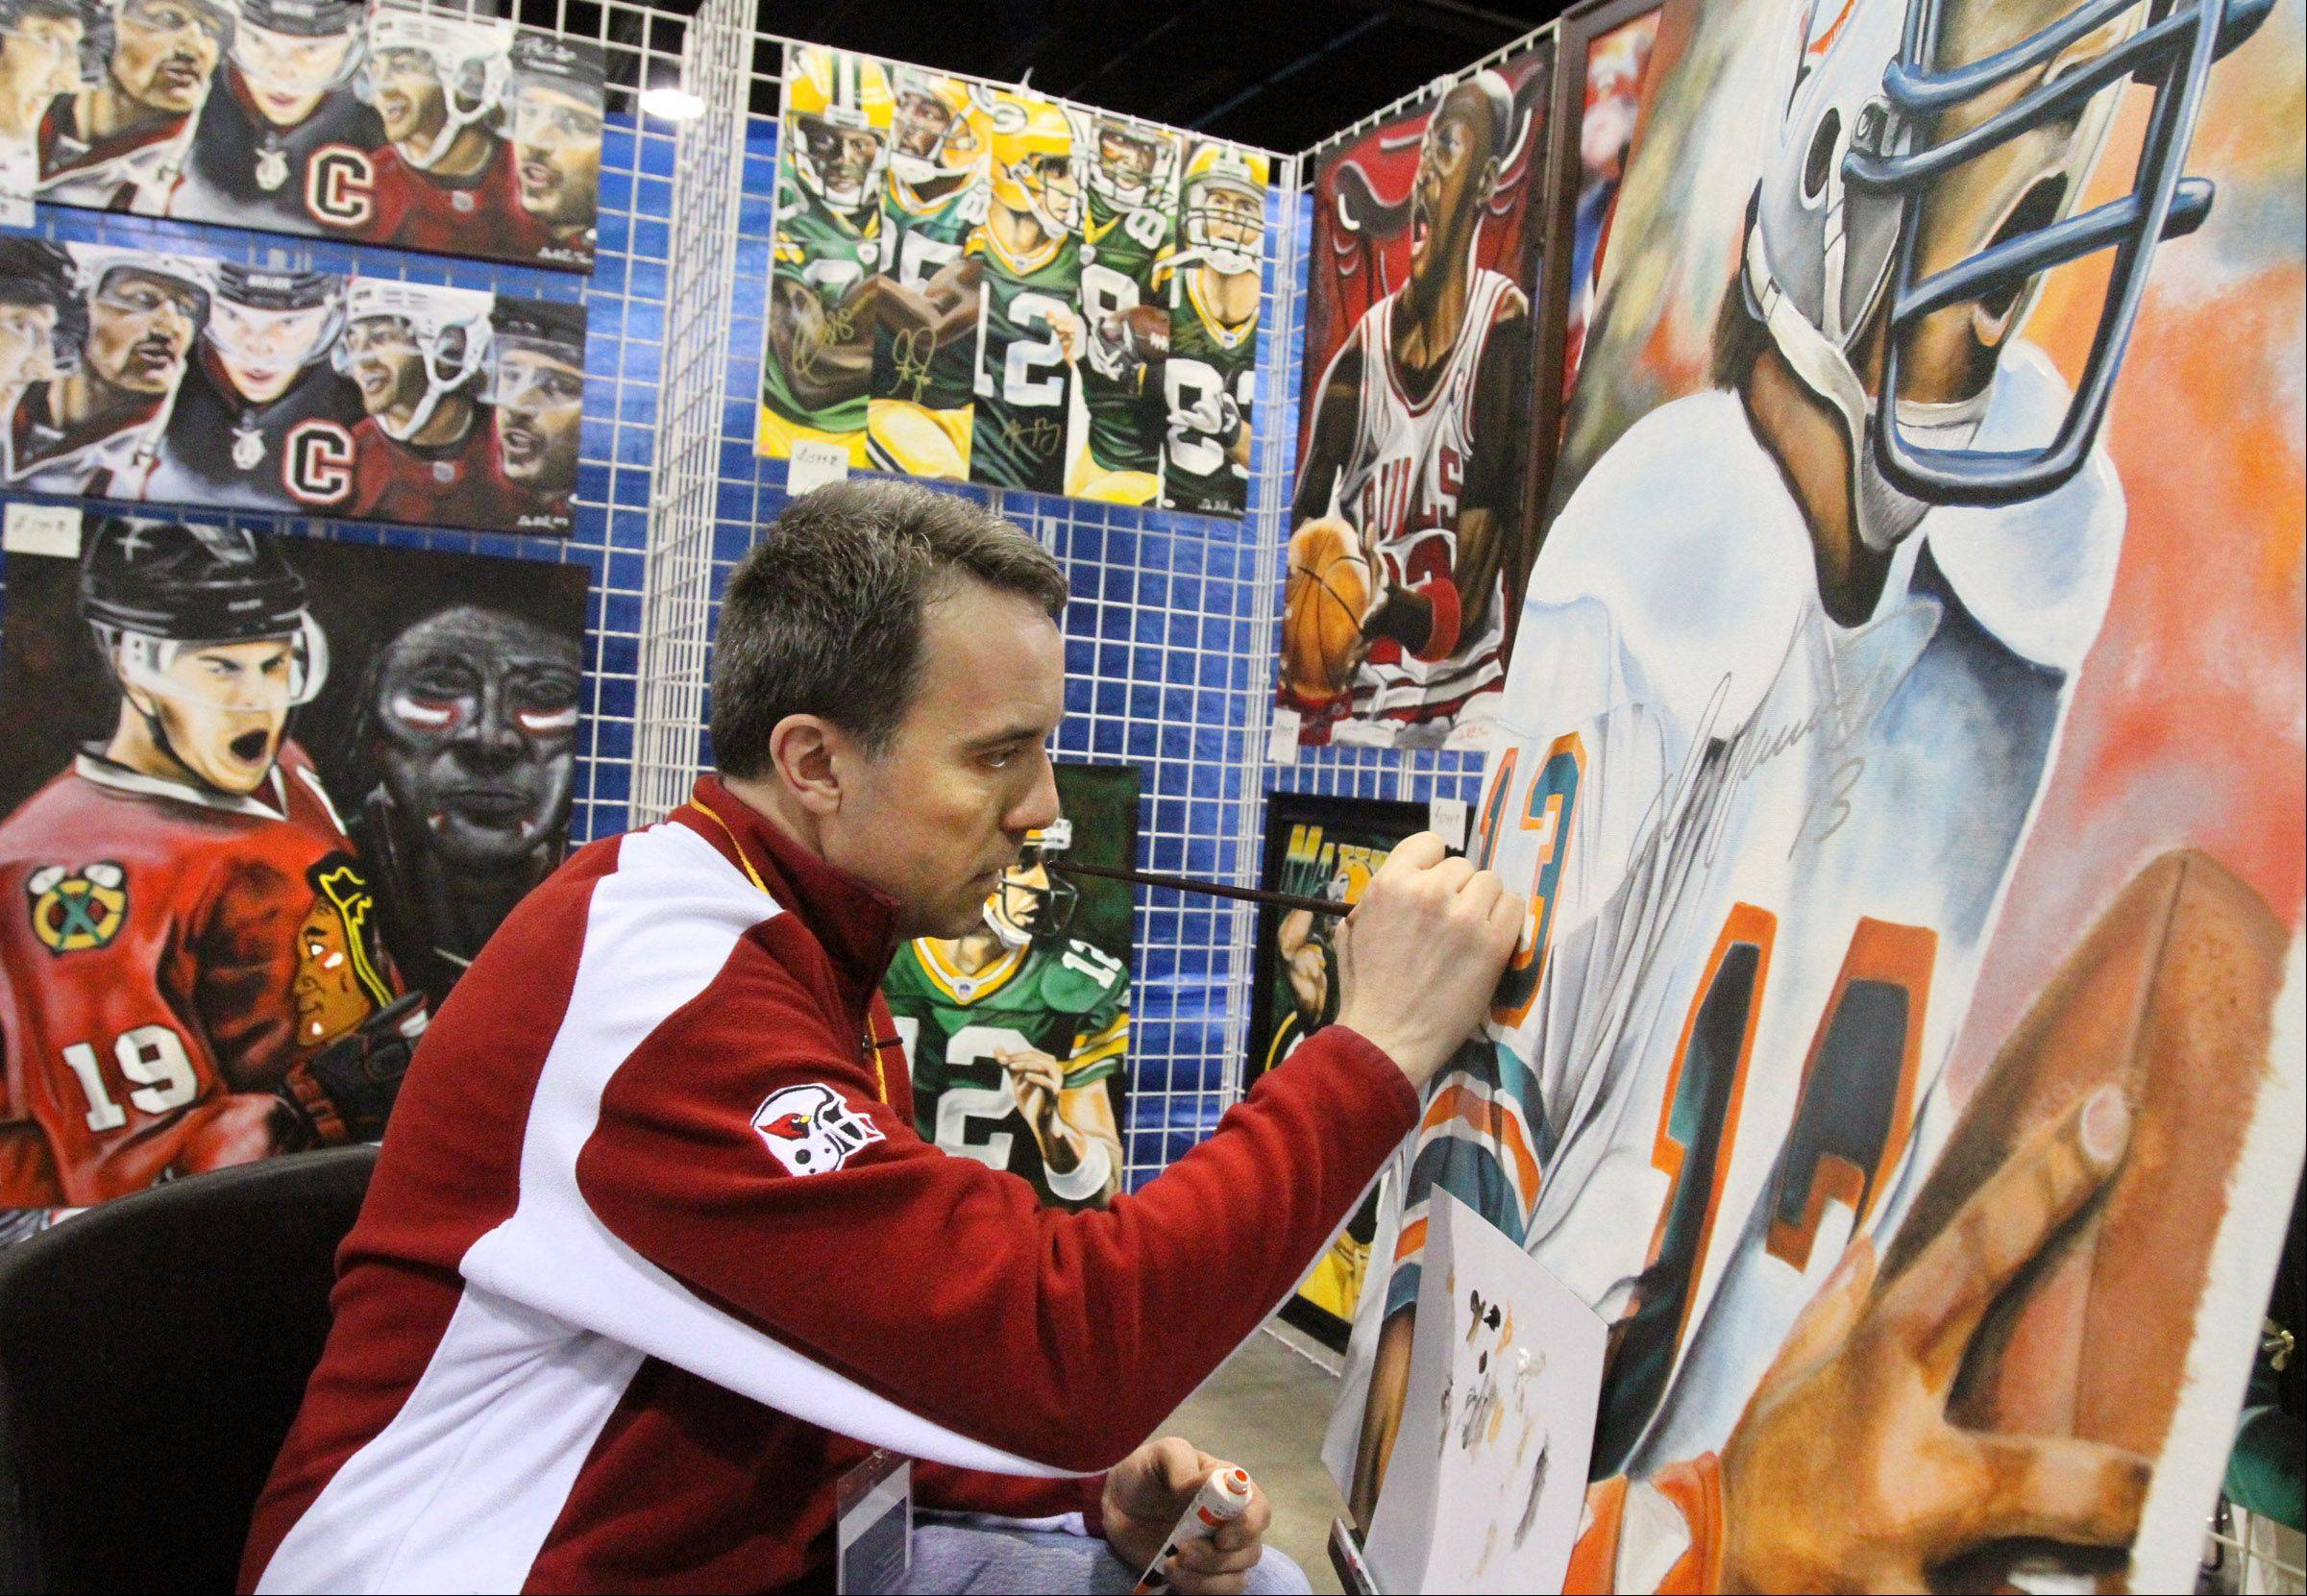 Dan St. Clair of Davis Junction, Illinois paints sports figures at the 46th annual Sun-Times Sports Collectibles Show at Donald E. Stevens Convention Center in Rosemont on Sunday, March 24, 2013. St. Clair said his favorite sport to paint is football and has painted thousands of pieces since he was fifteen.